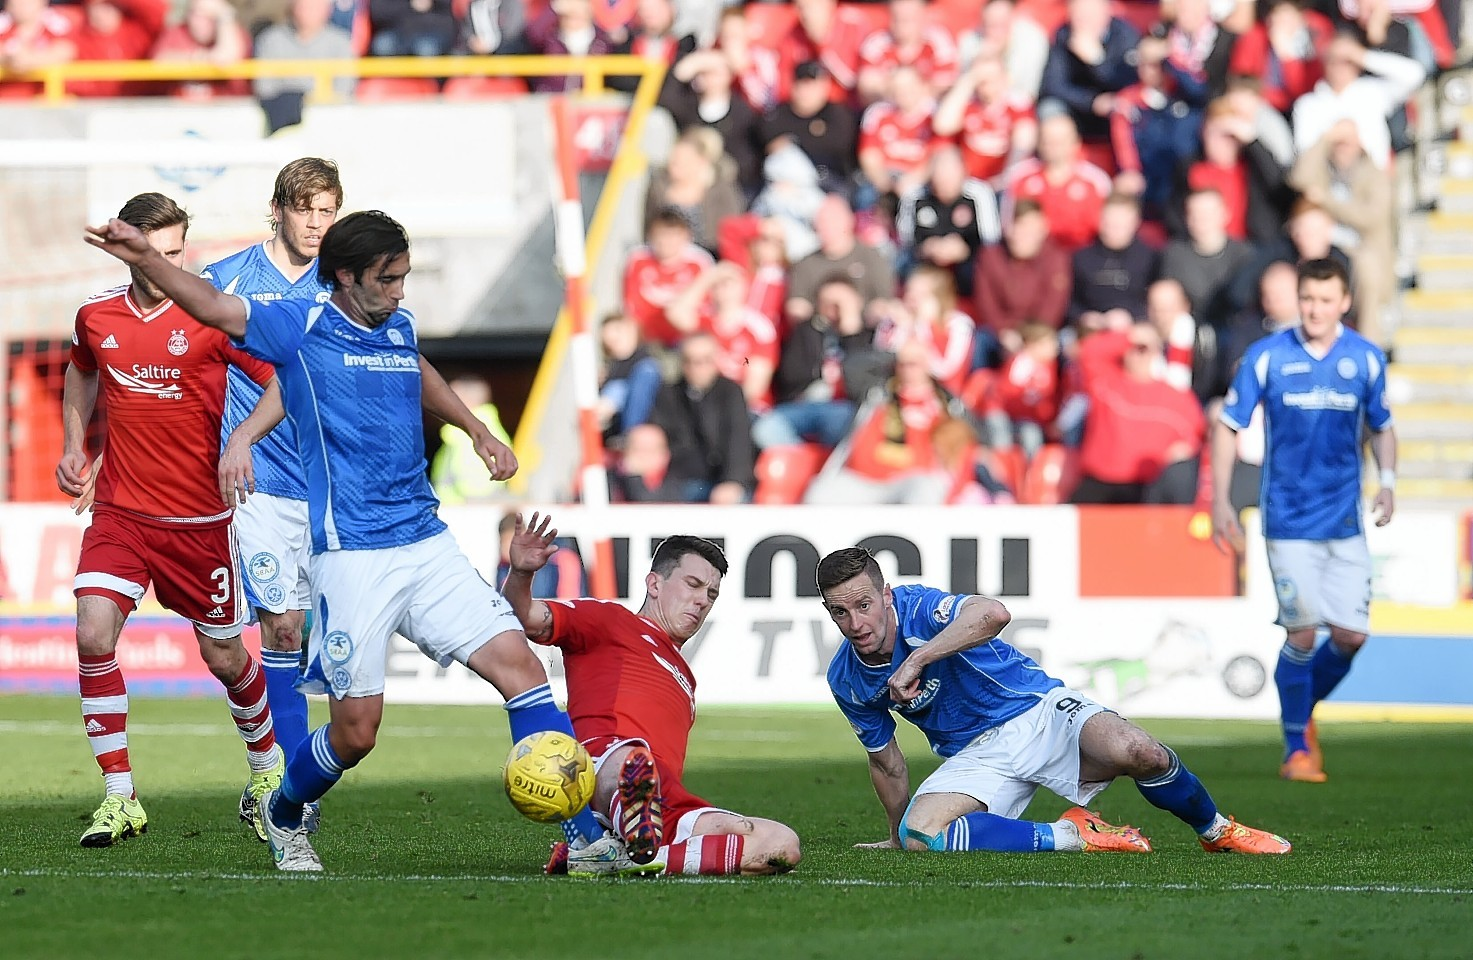 Aberdeen will face St Johnstone on Saturday, April 29.